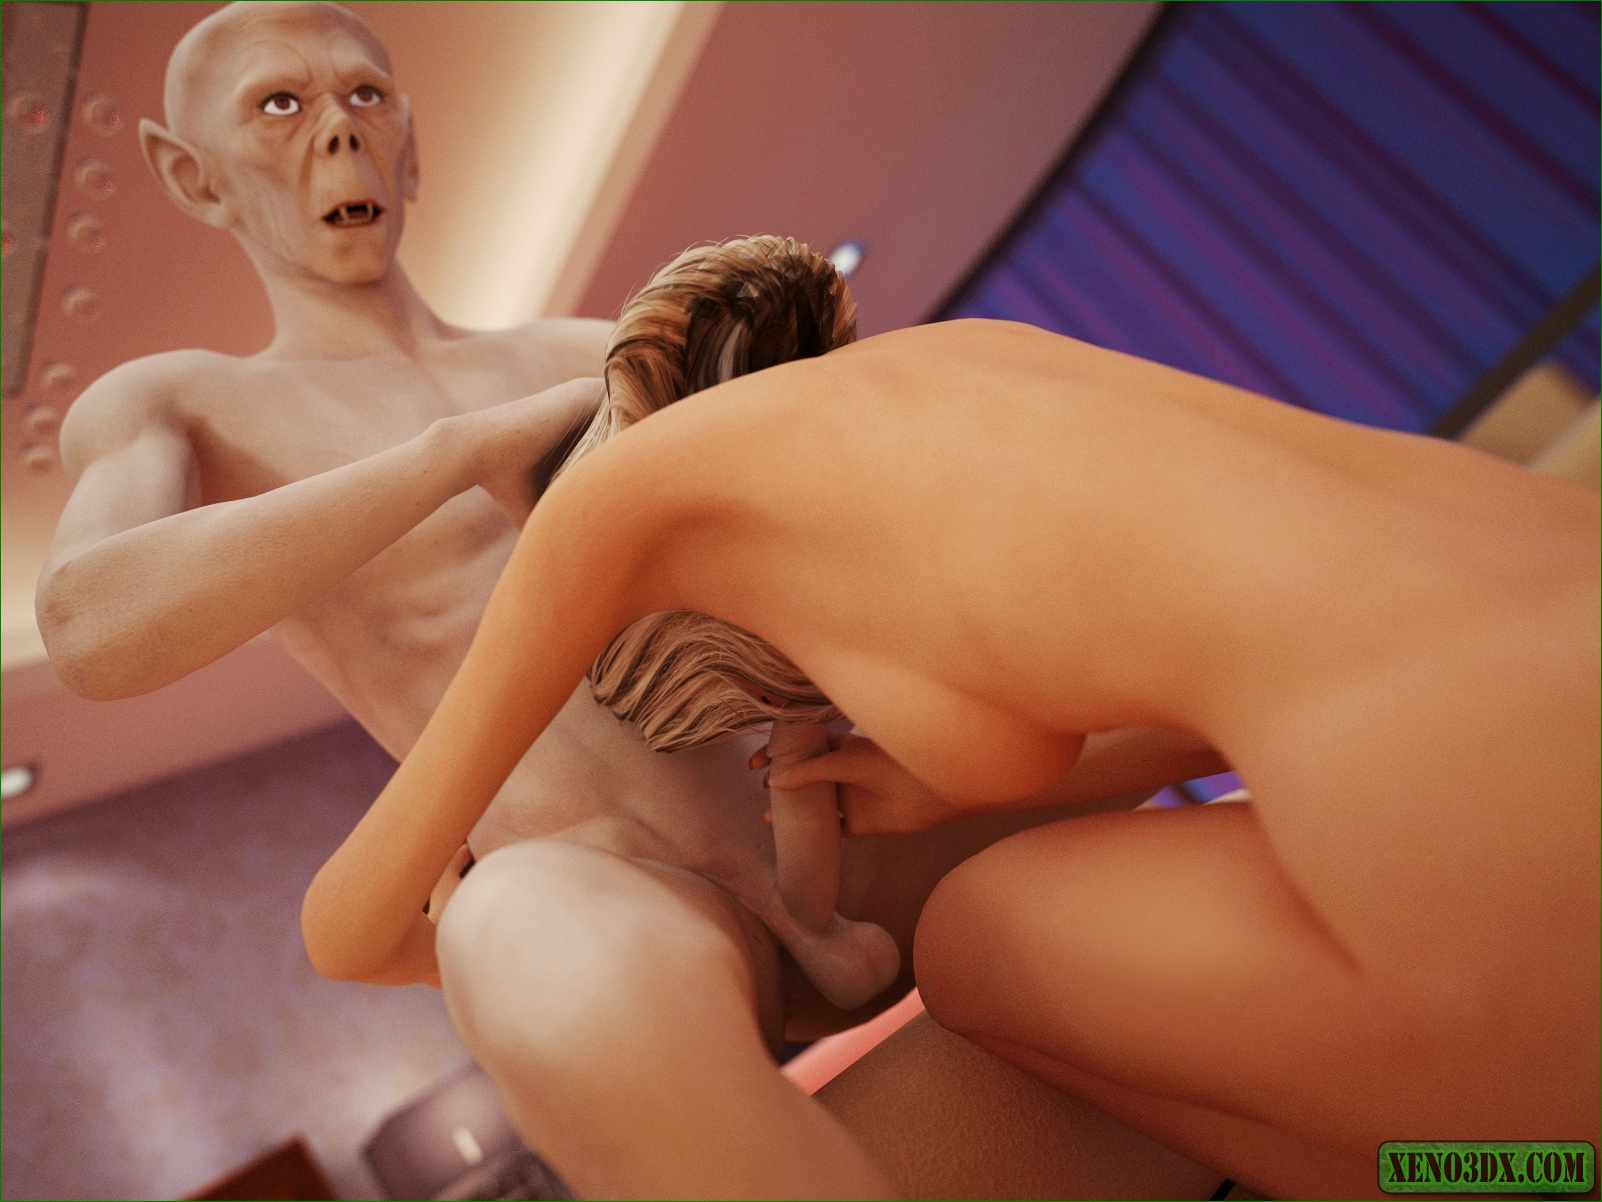 3d fucked by monsters sexy clip